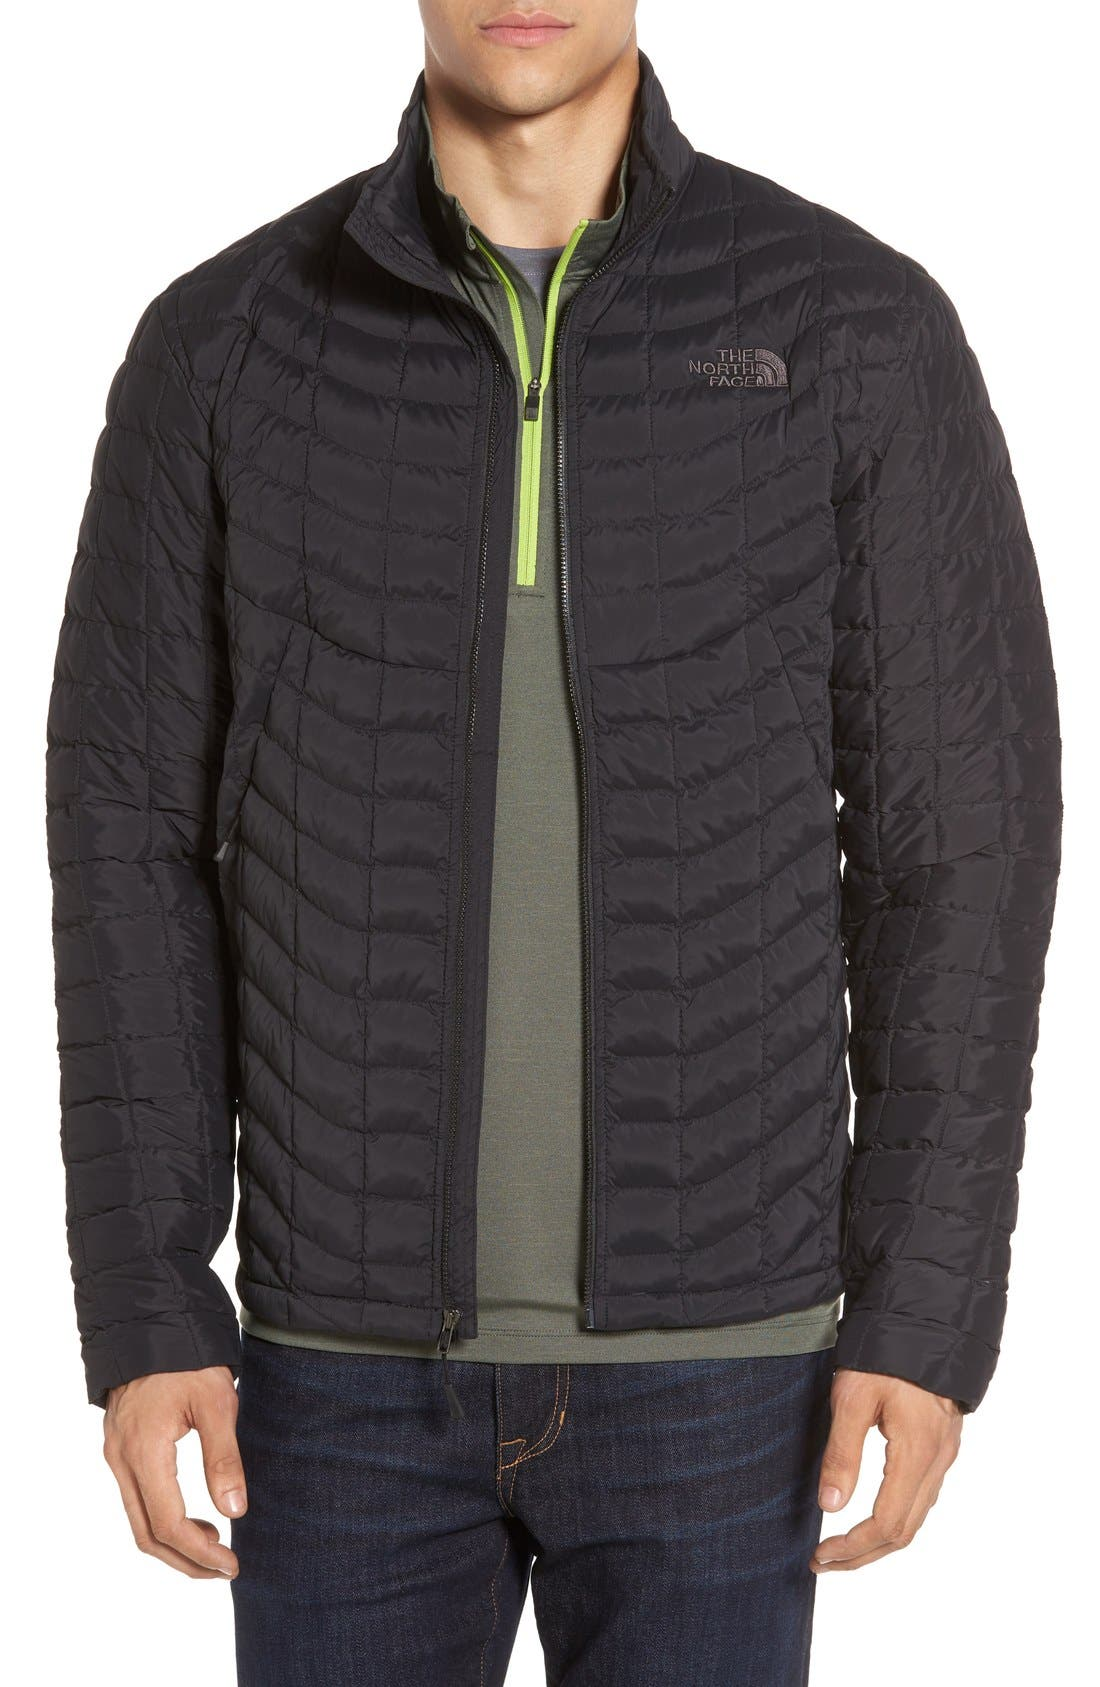 Alternate Image 1 Selected - The North Face Packable Stretch ThermoBall™ PrimaLoft® Jacket